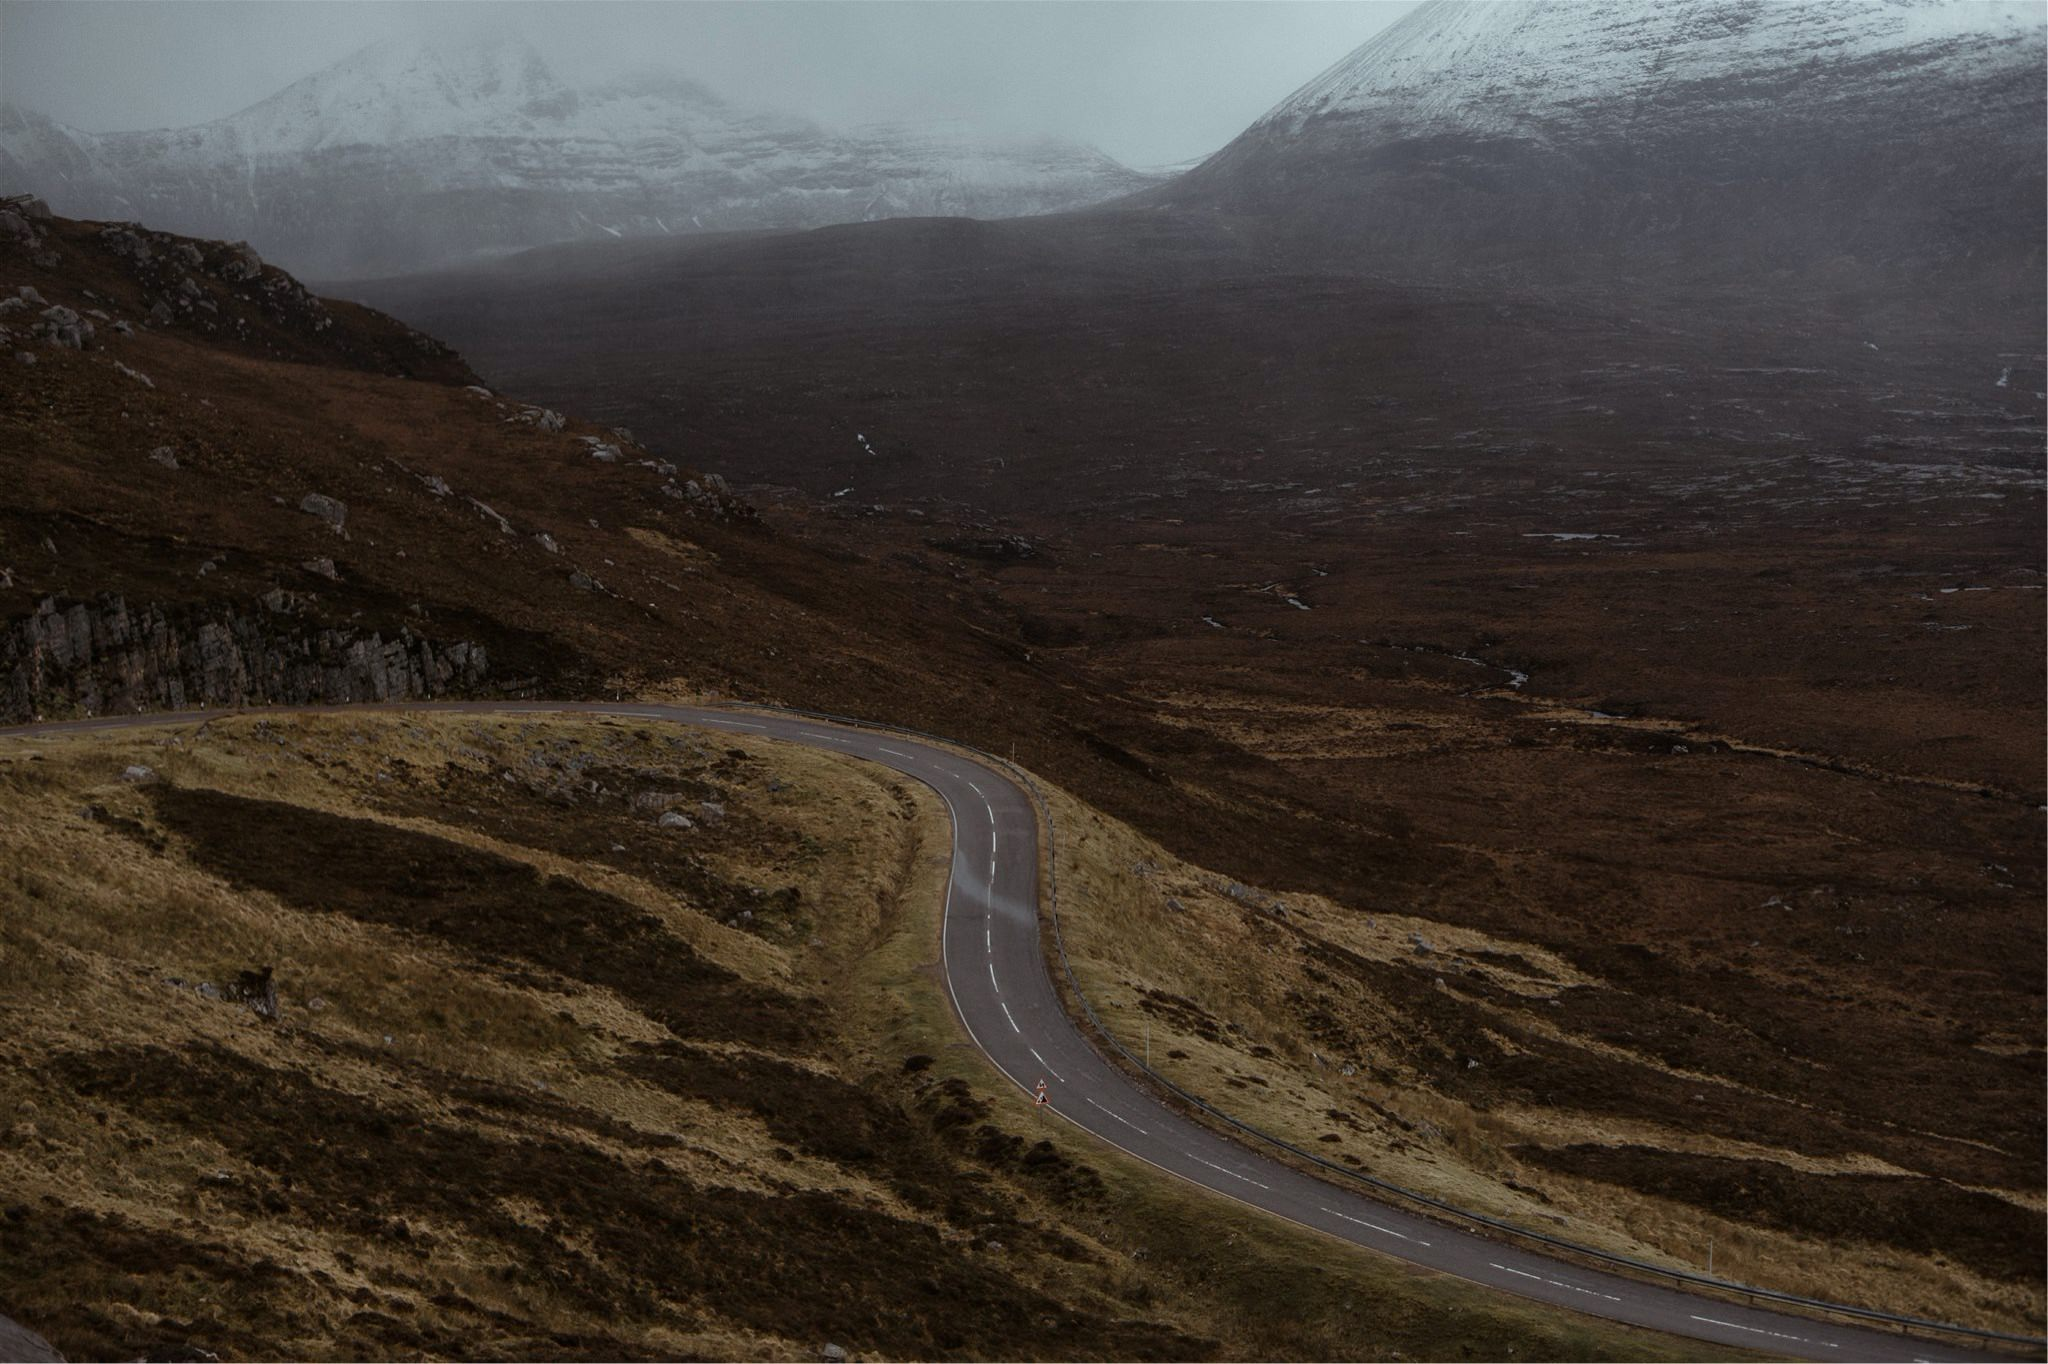 Road leading through the mountains on the NC500 Route in Assynt, Scotland